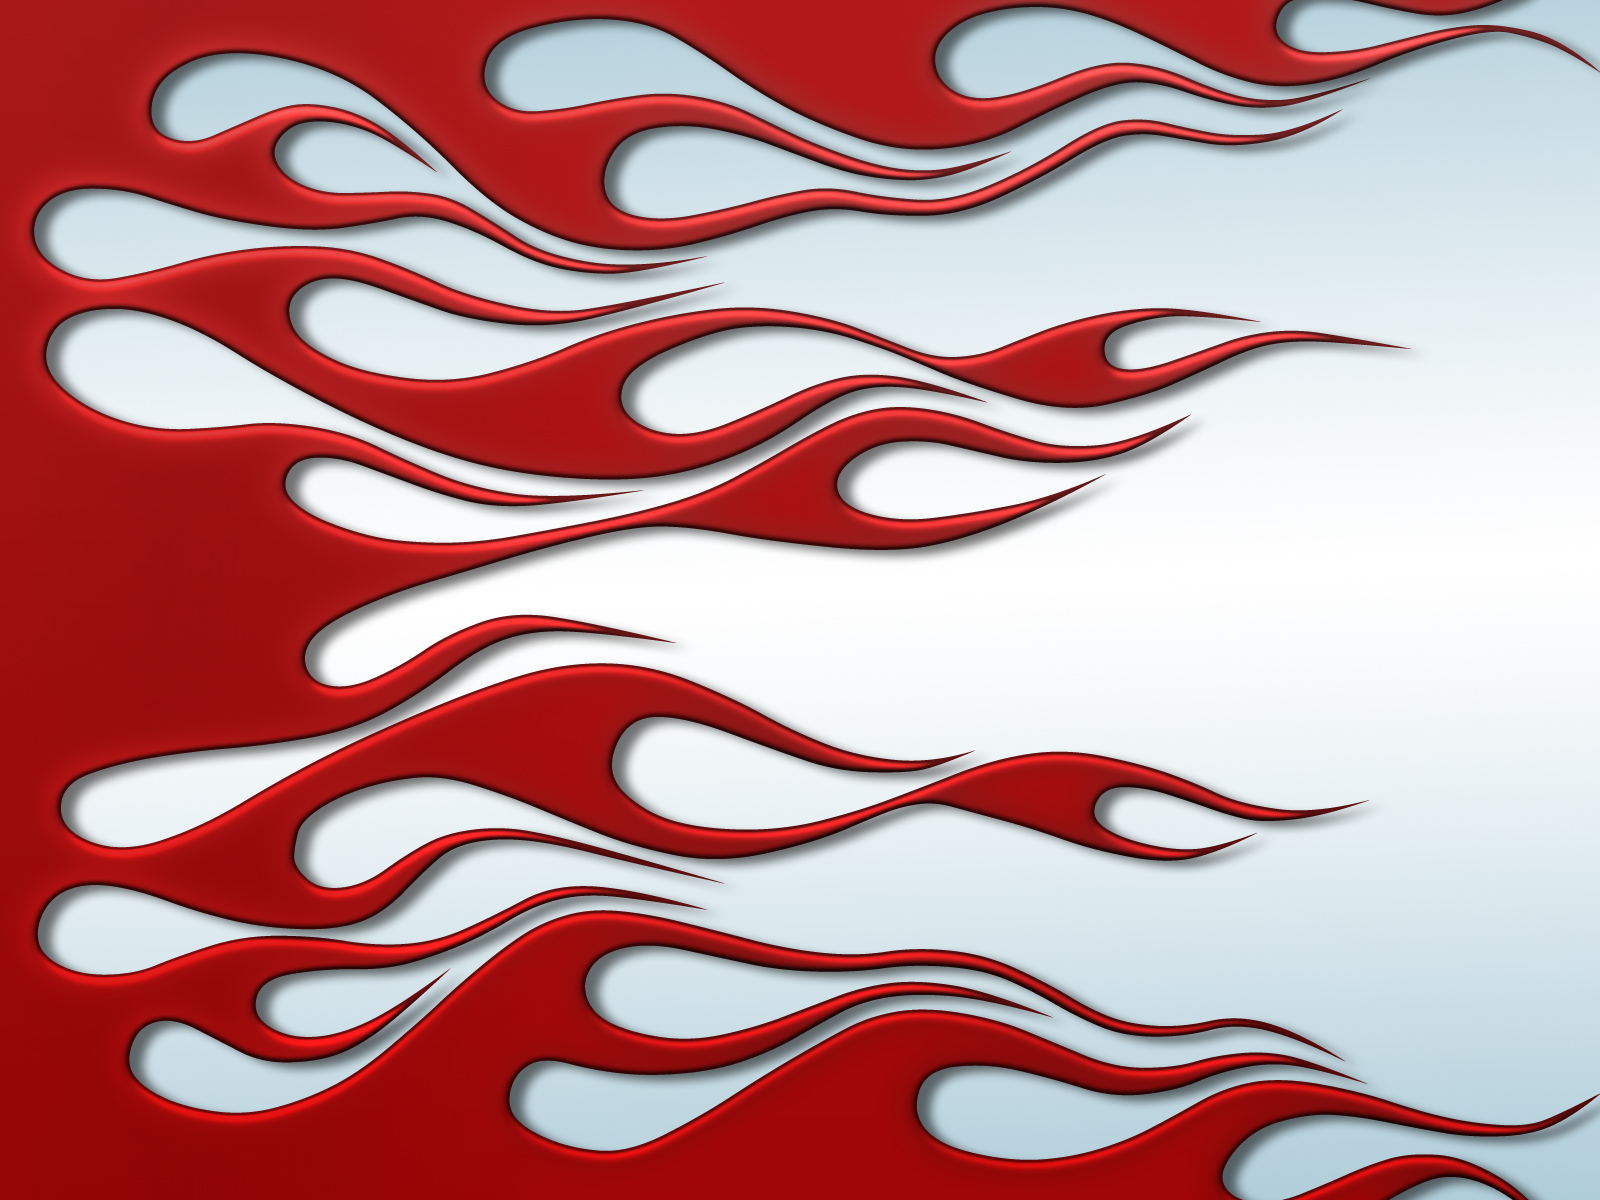 Wallpapers For Red Flames White Background 1600x1200